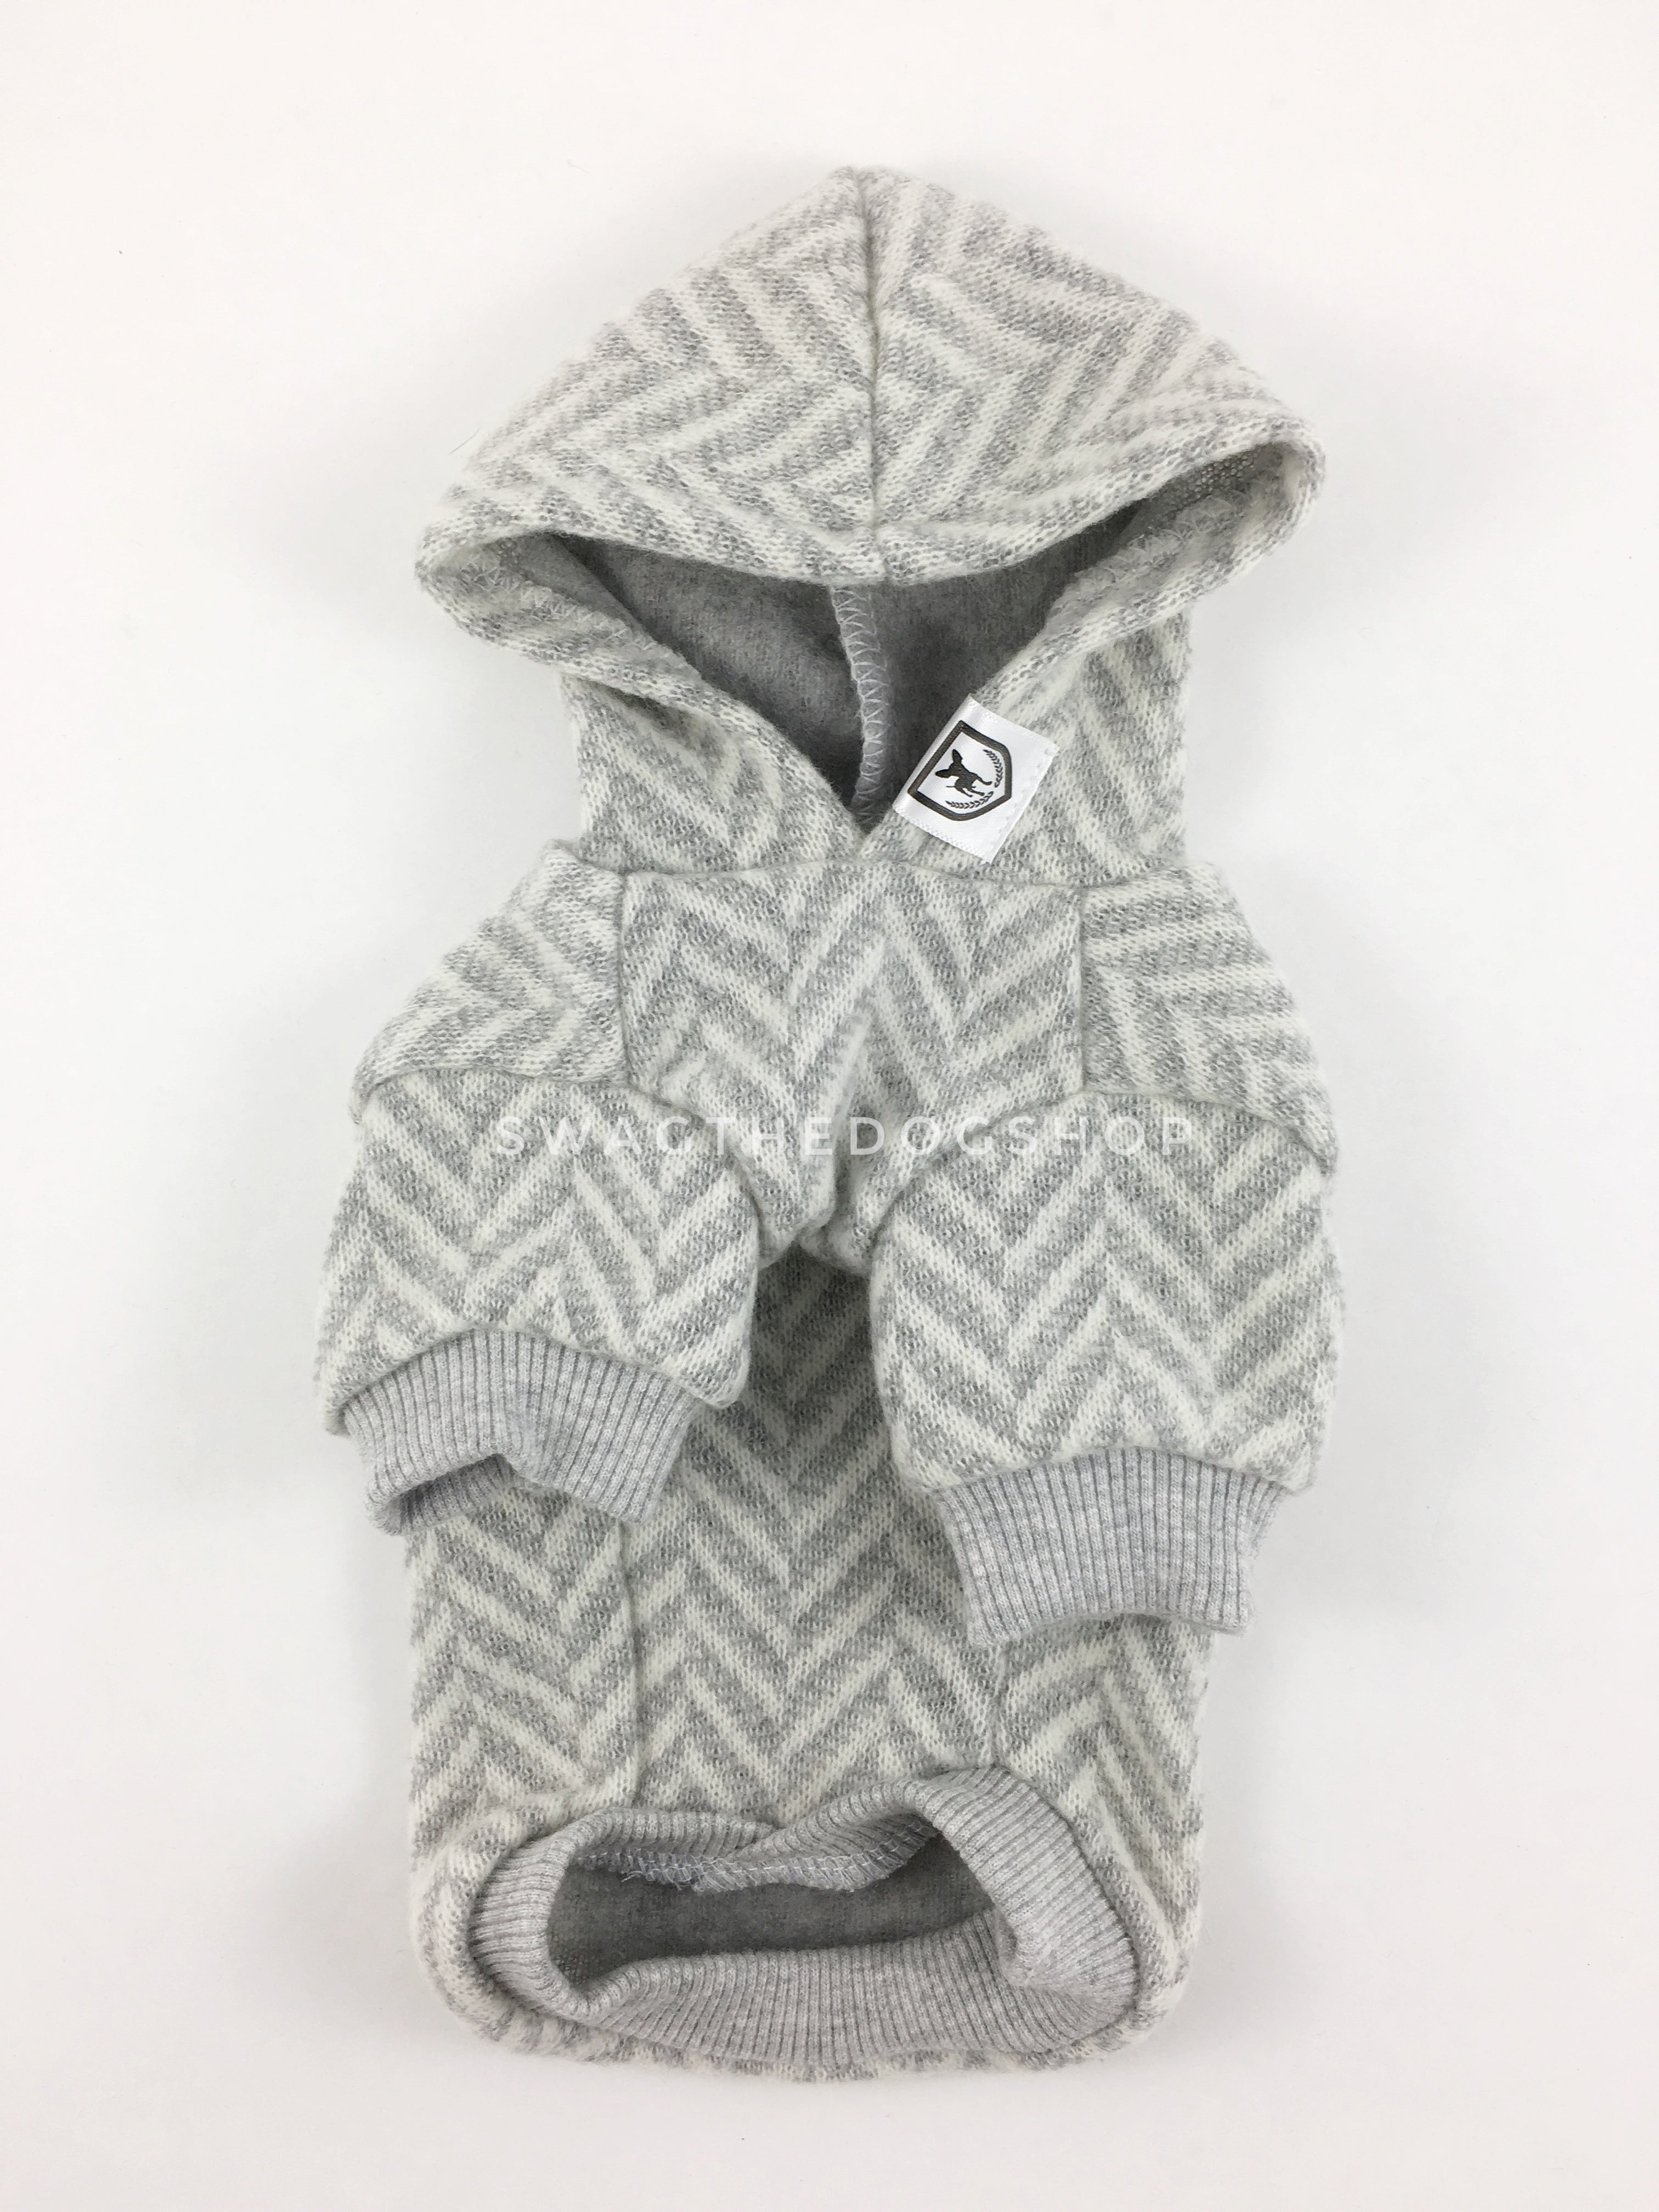 Après Ski Gray Hoodie - Product Front View. Gray and White Herringbone Hoodie